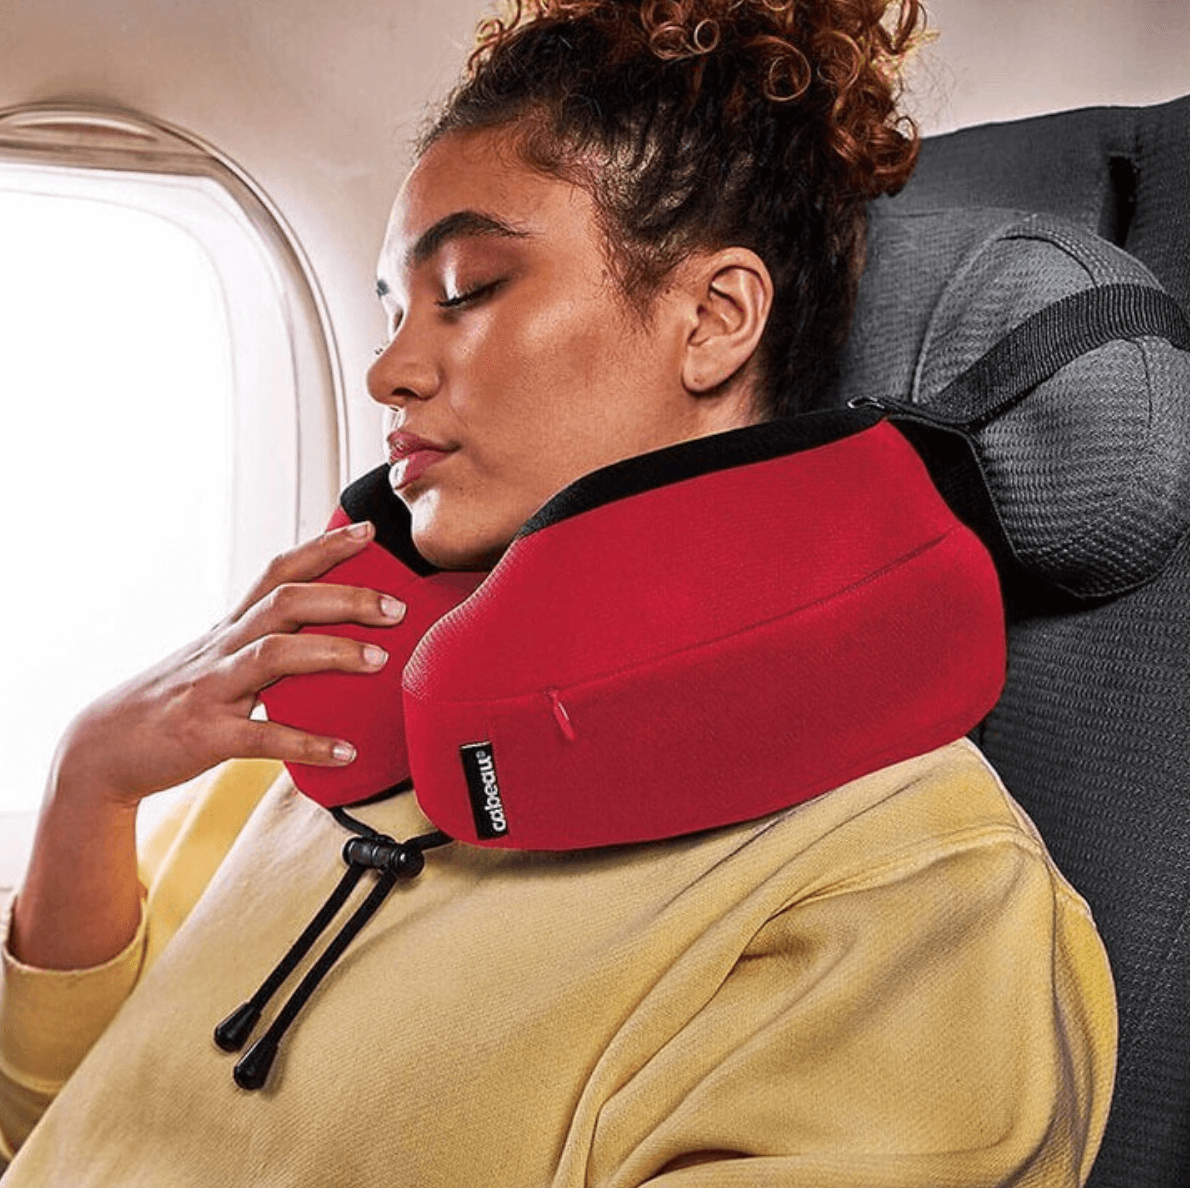 woman on plane using cabeau neck pillow